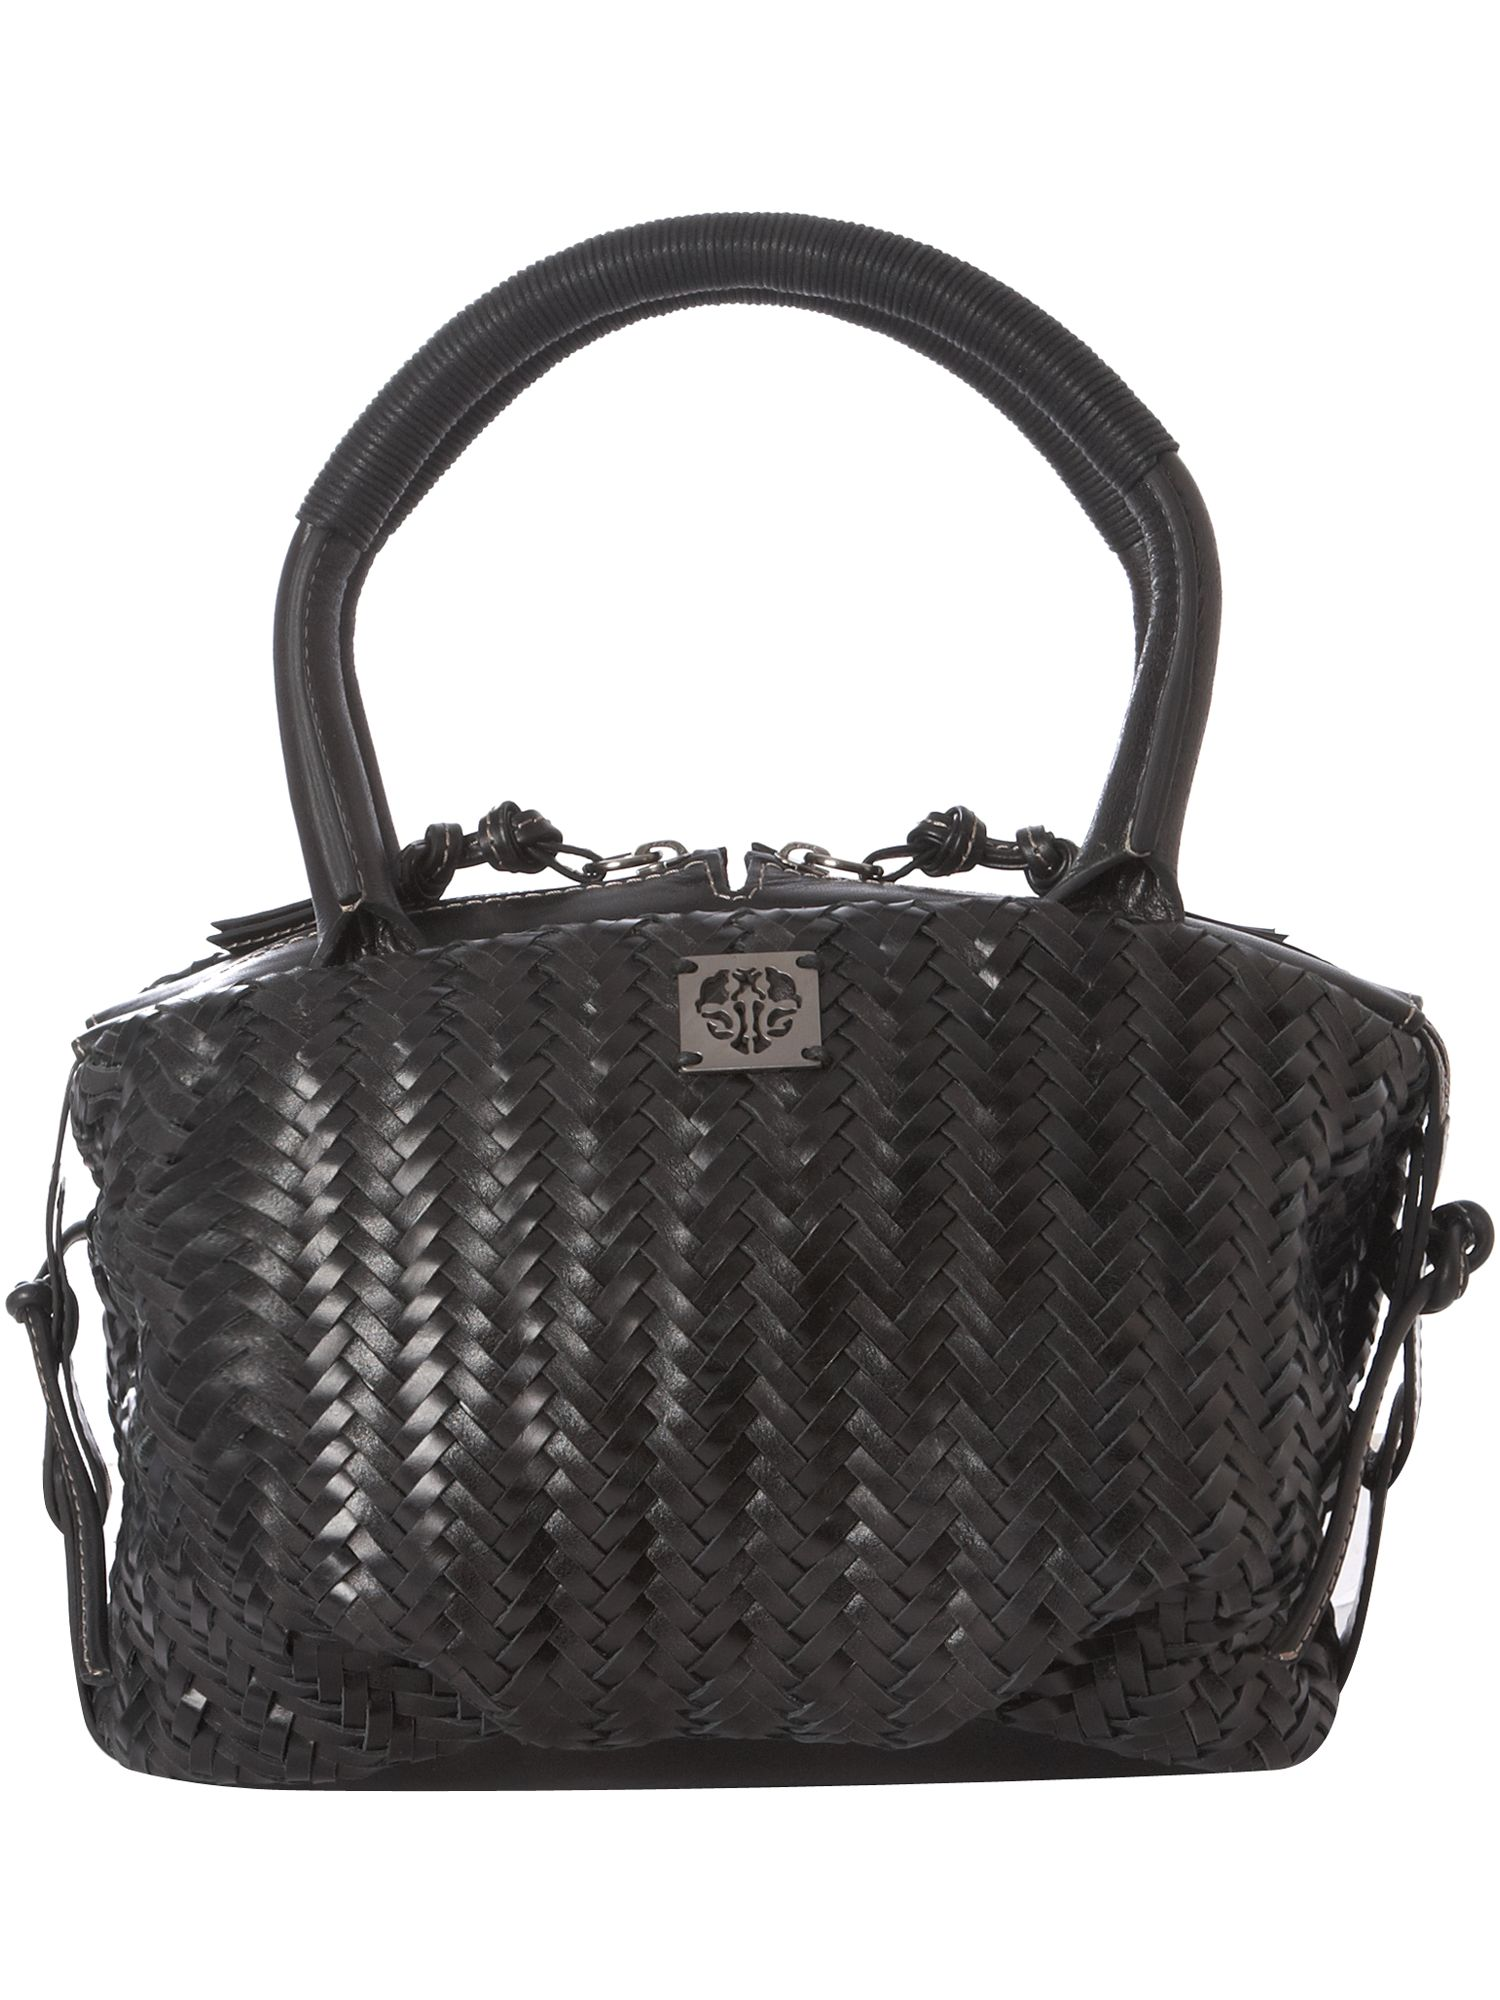 Ameko Elton Small leather tote bag. product image